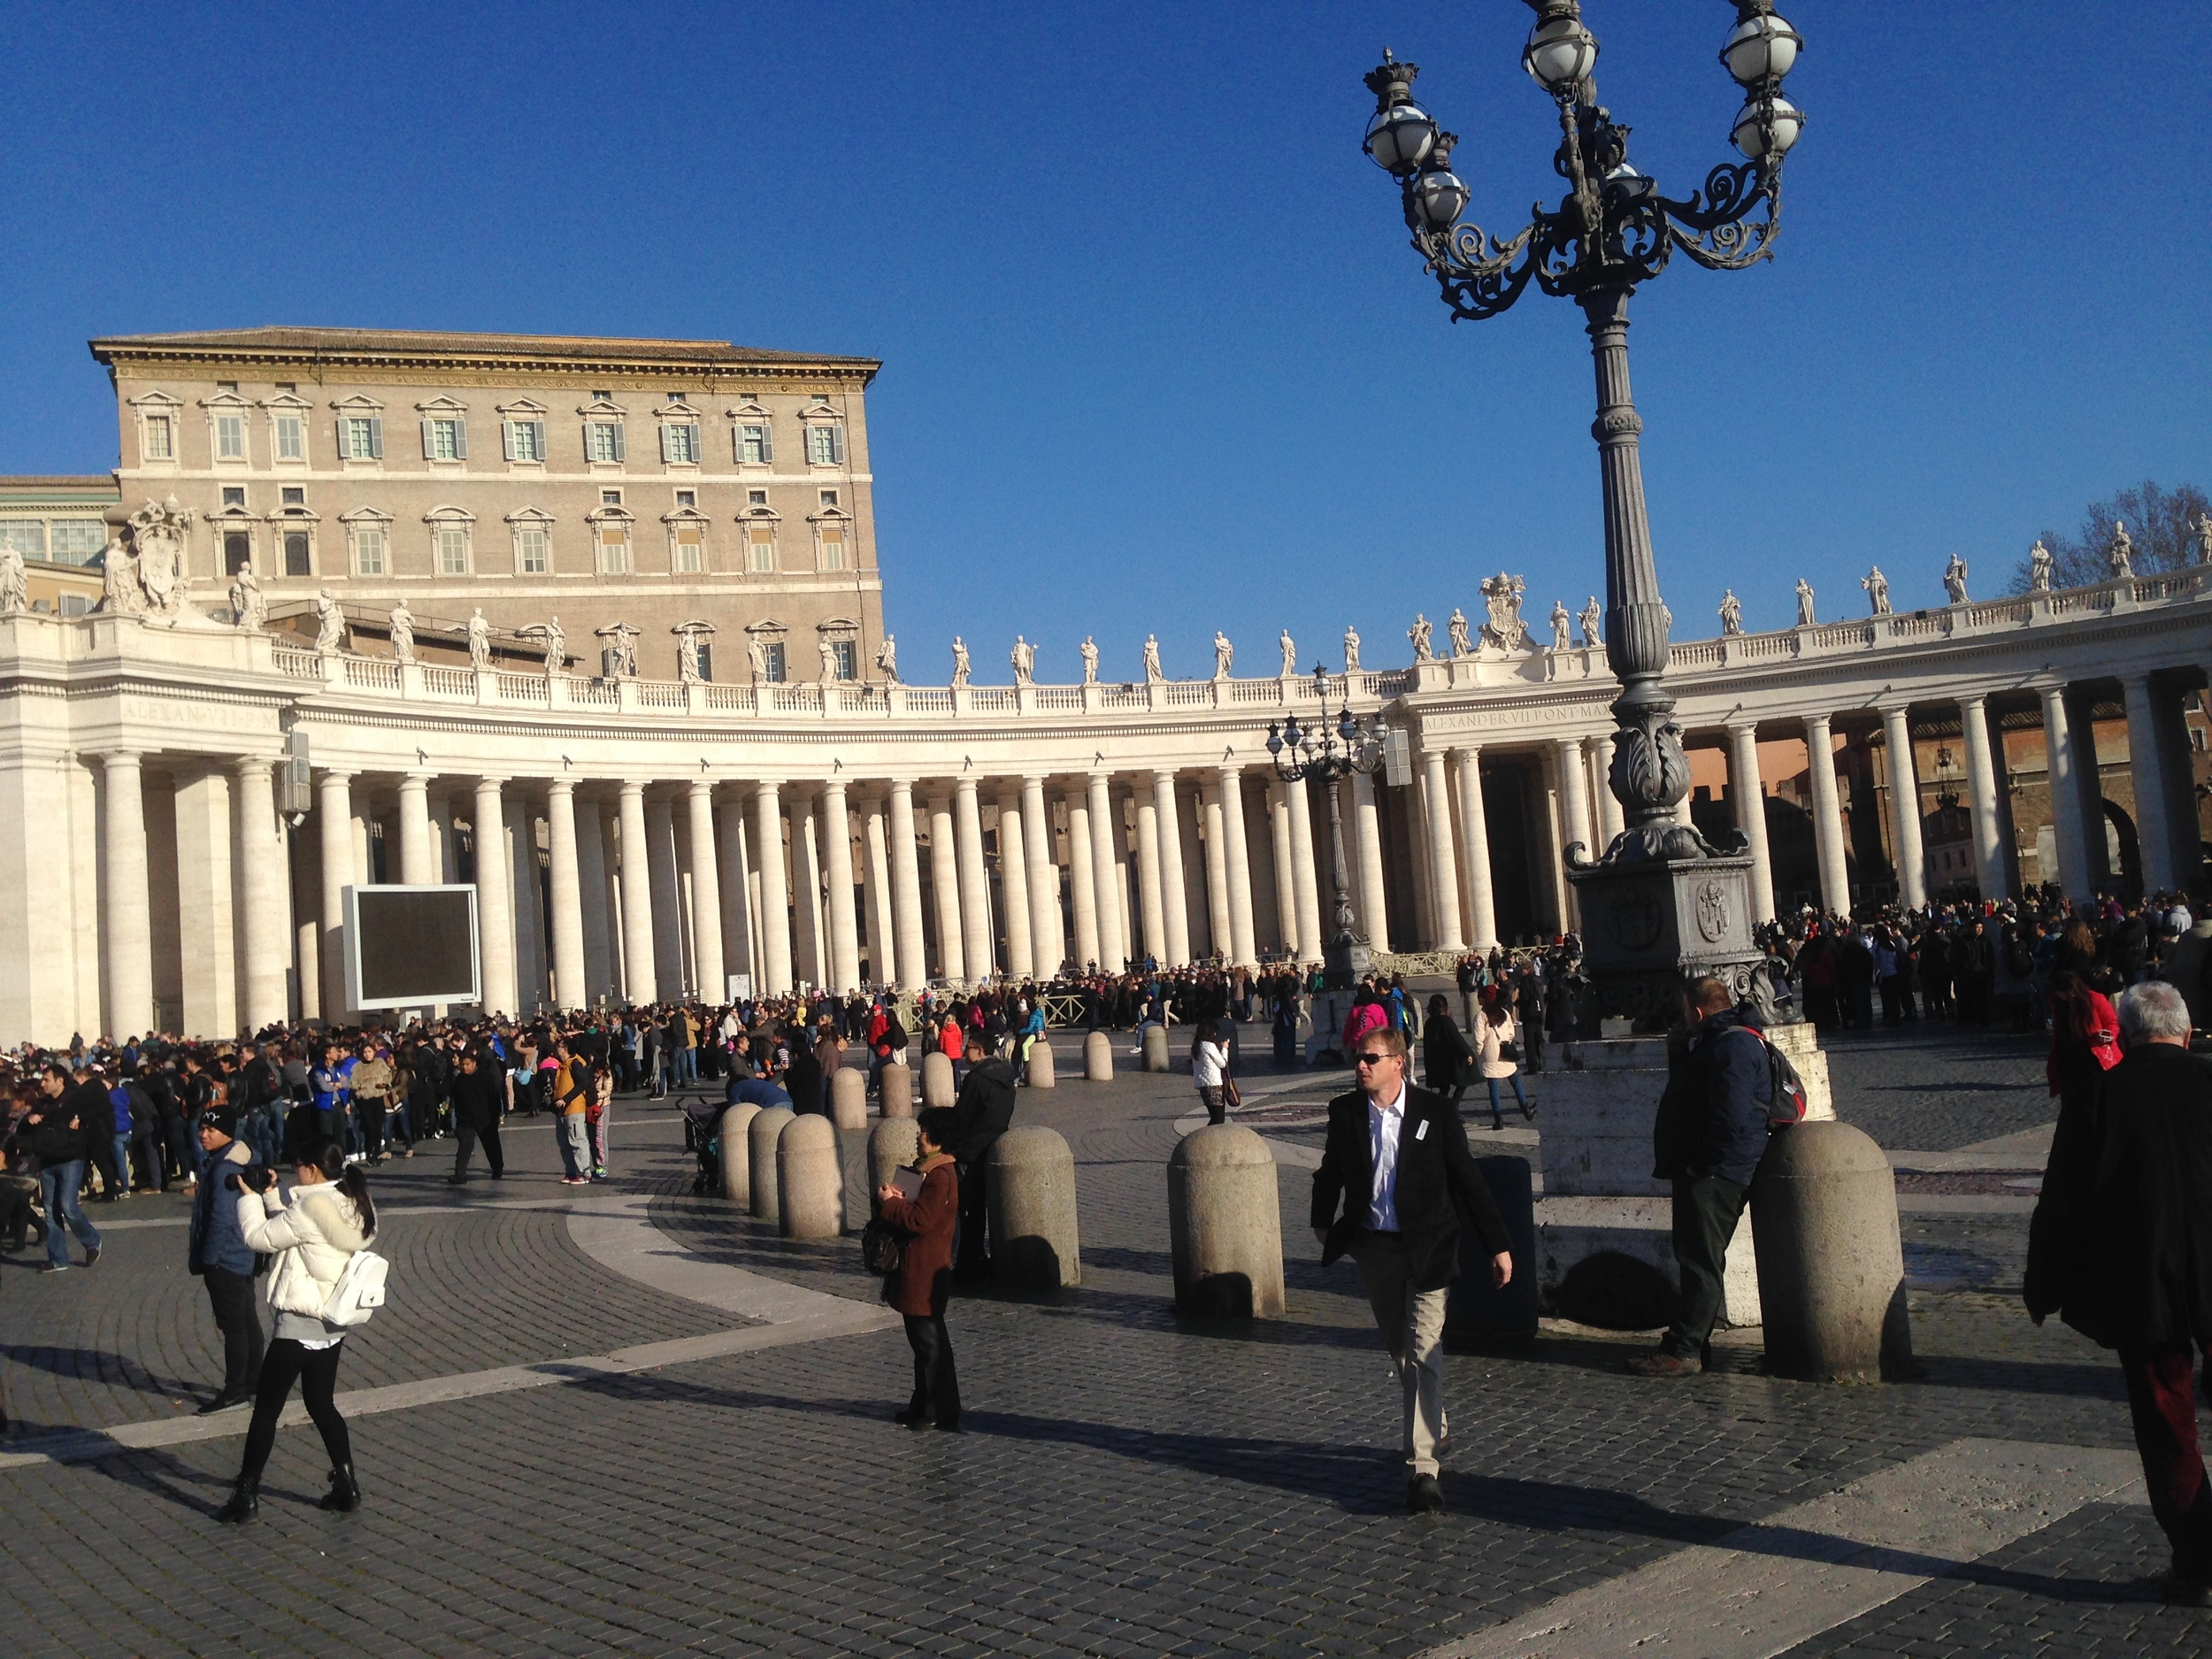 St. Peter's Square - The Vatican